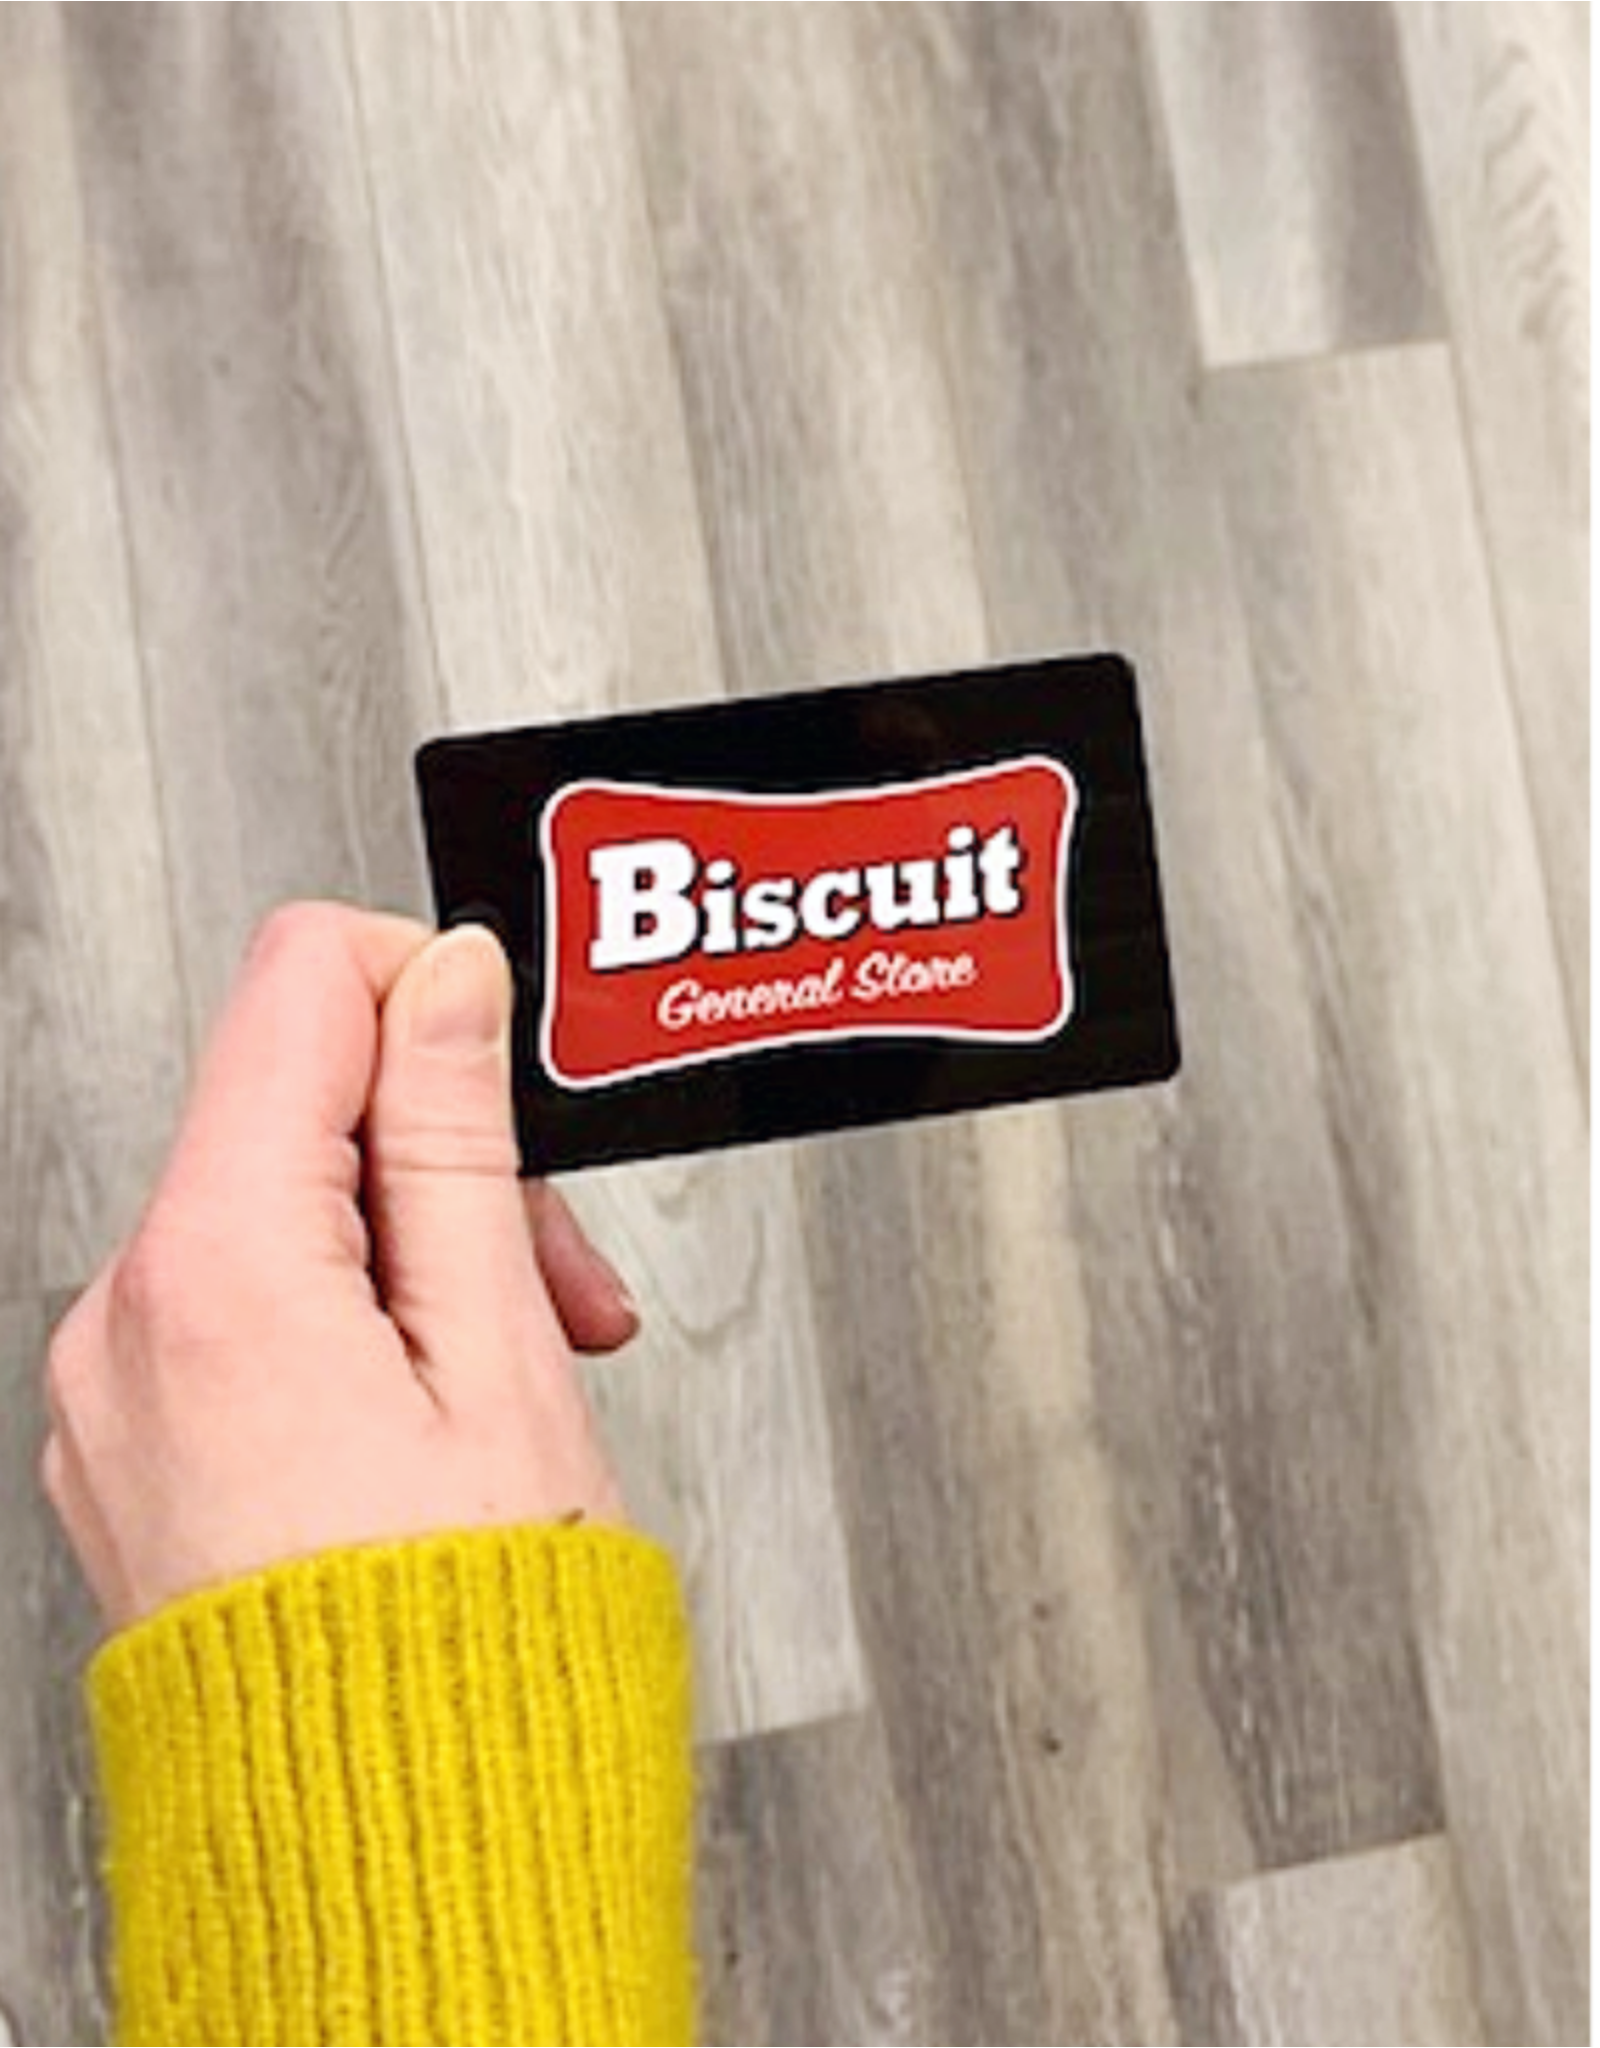 Biscuit Gift Card $300